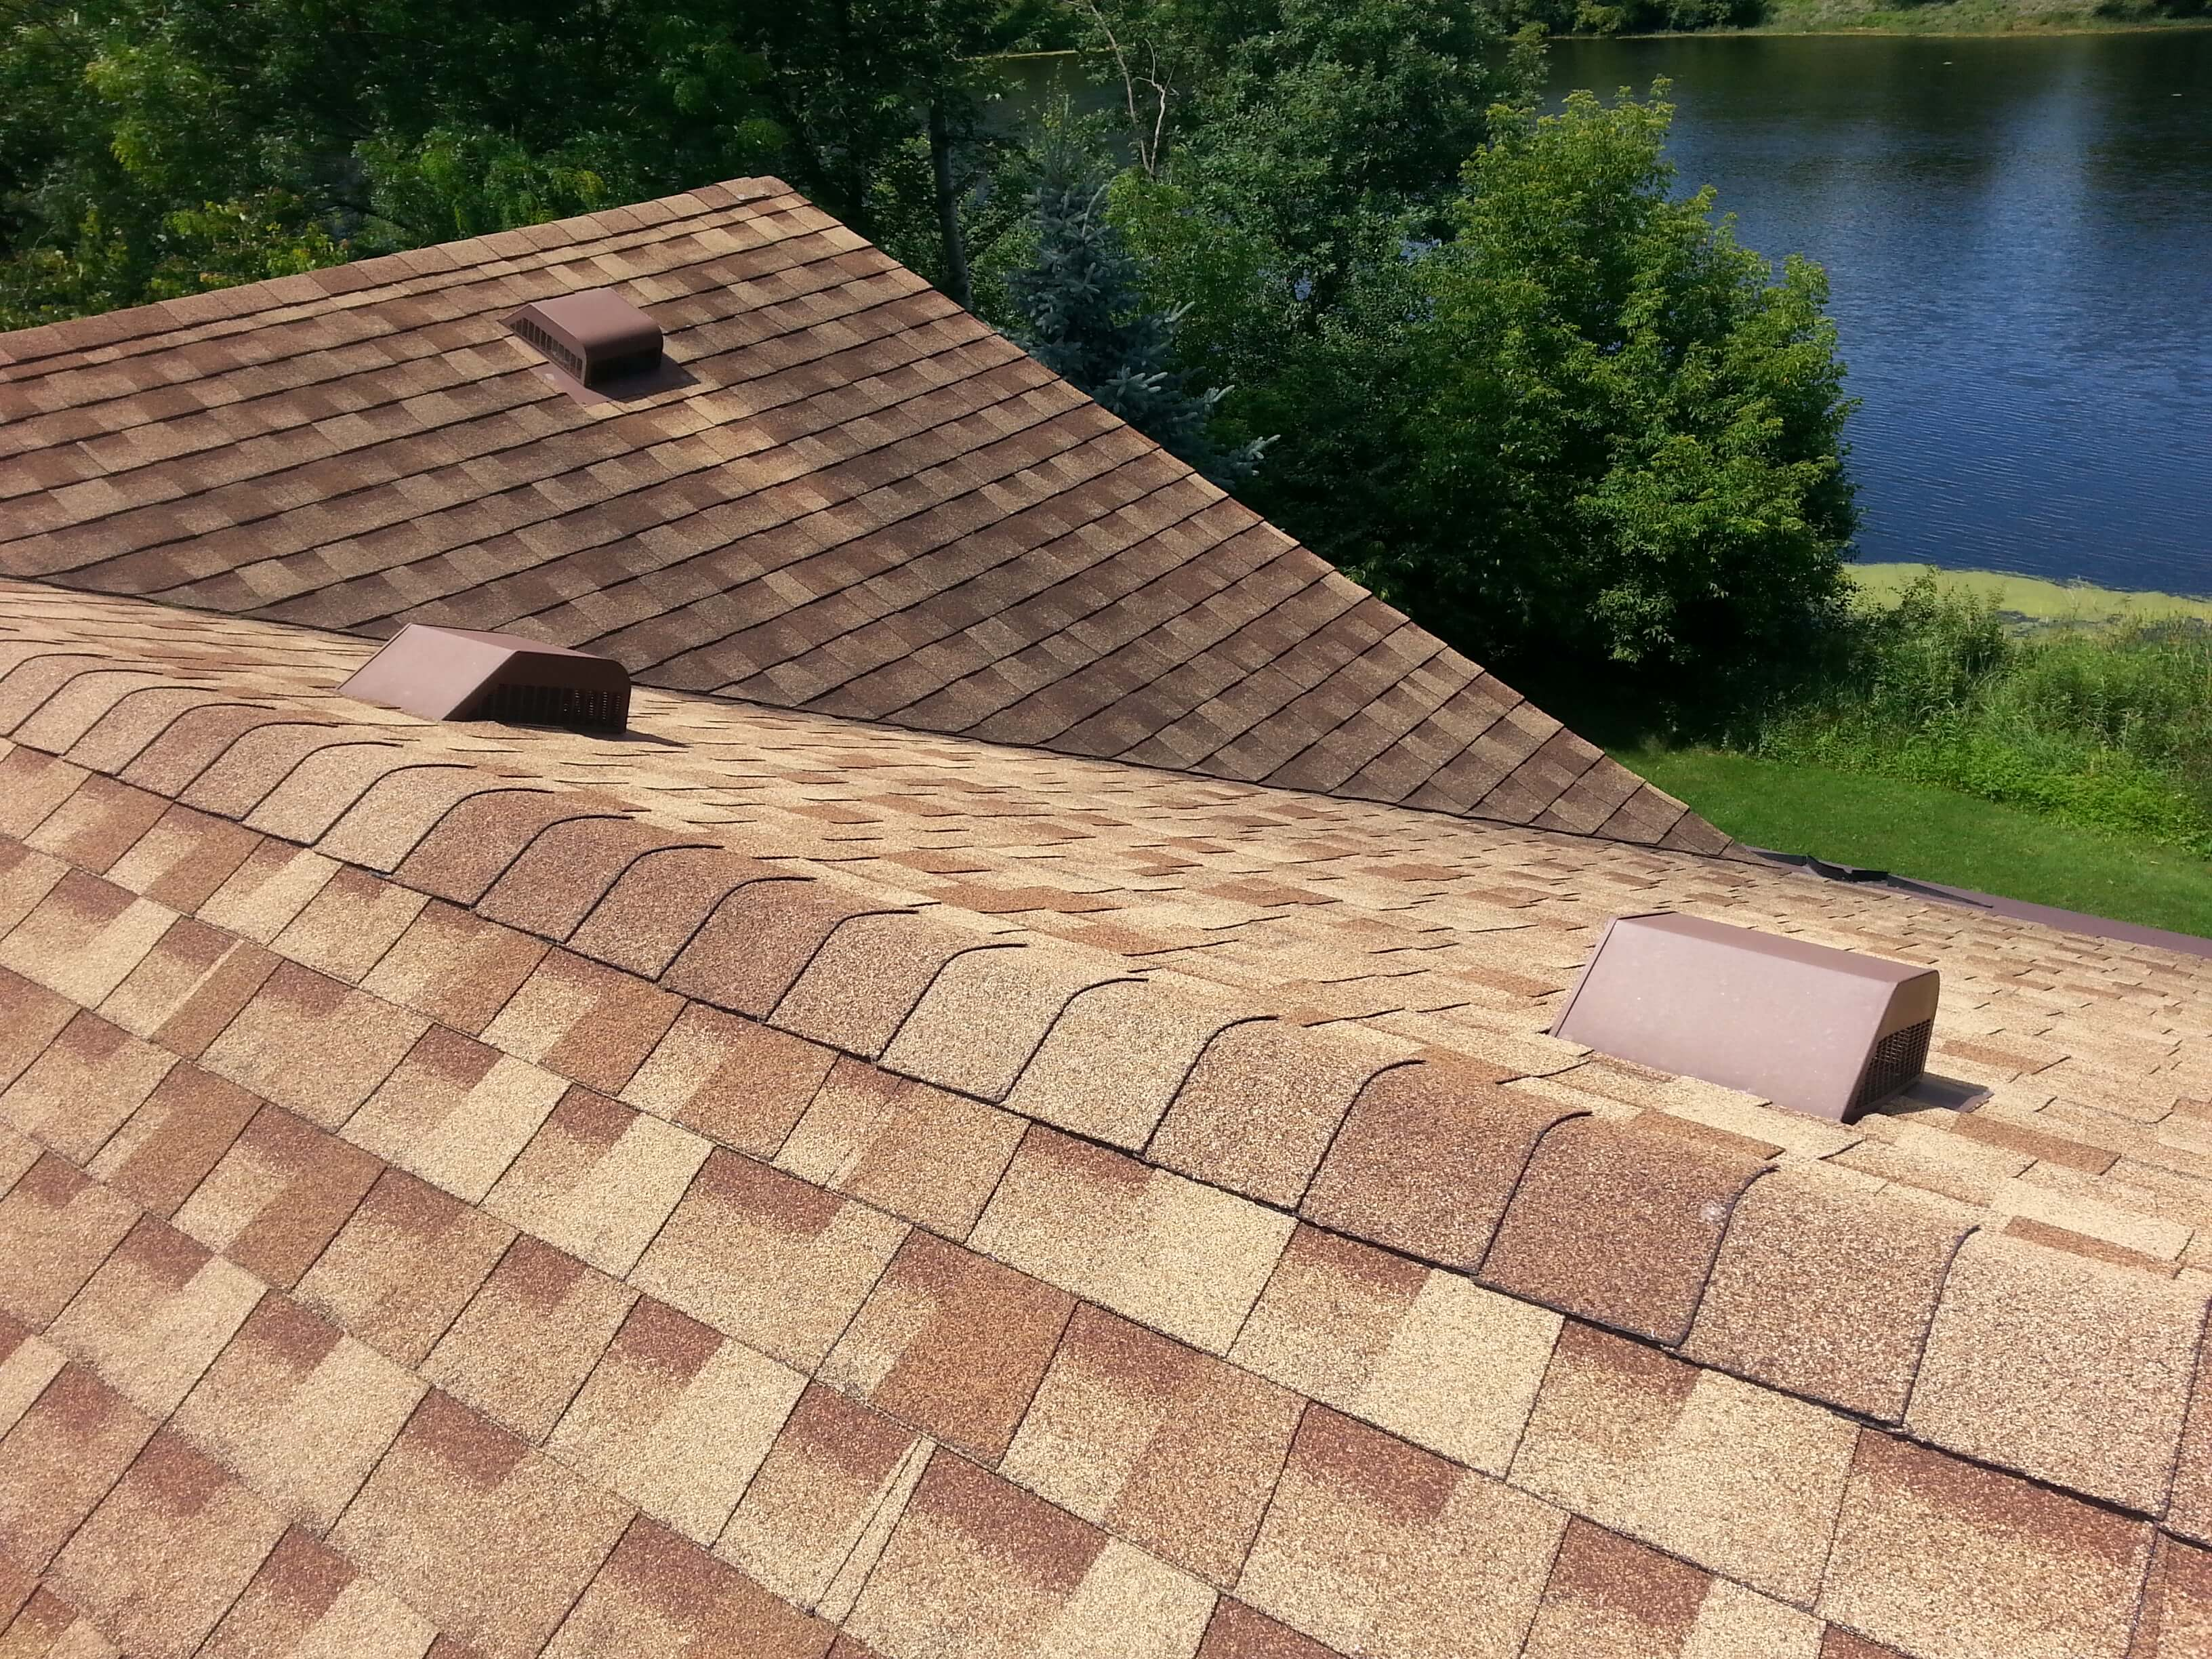 Roof Replacement Part 1 Should Contractors Use GAF Owens Corning or IKO? : cambridge roof - memphite.com